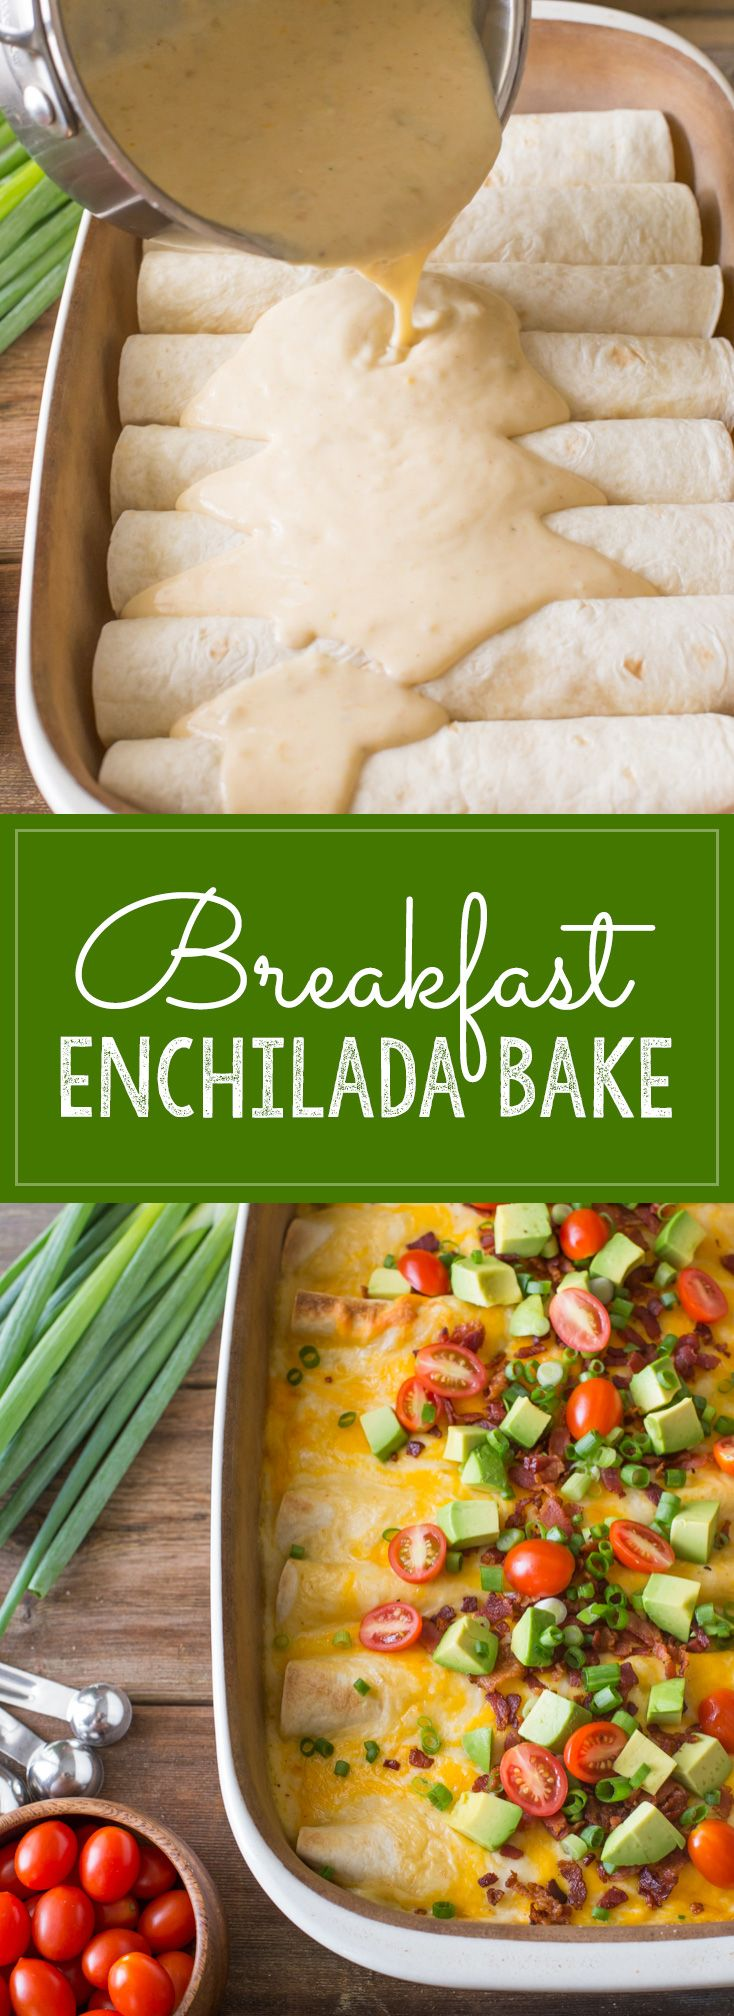 A super hearty  ultimate breakfast enchilada bake filled with eggs and cheese that can be served any time of the day